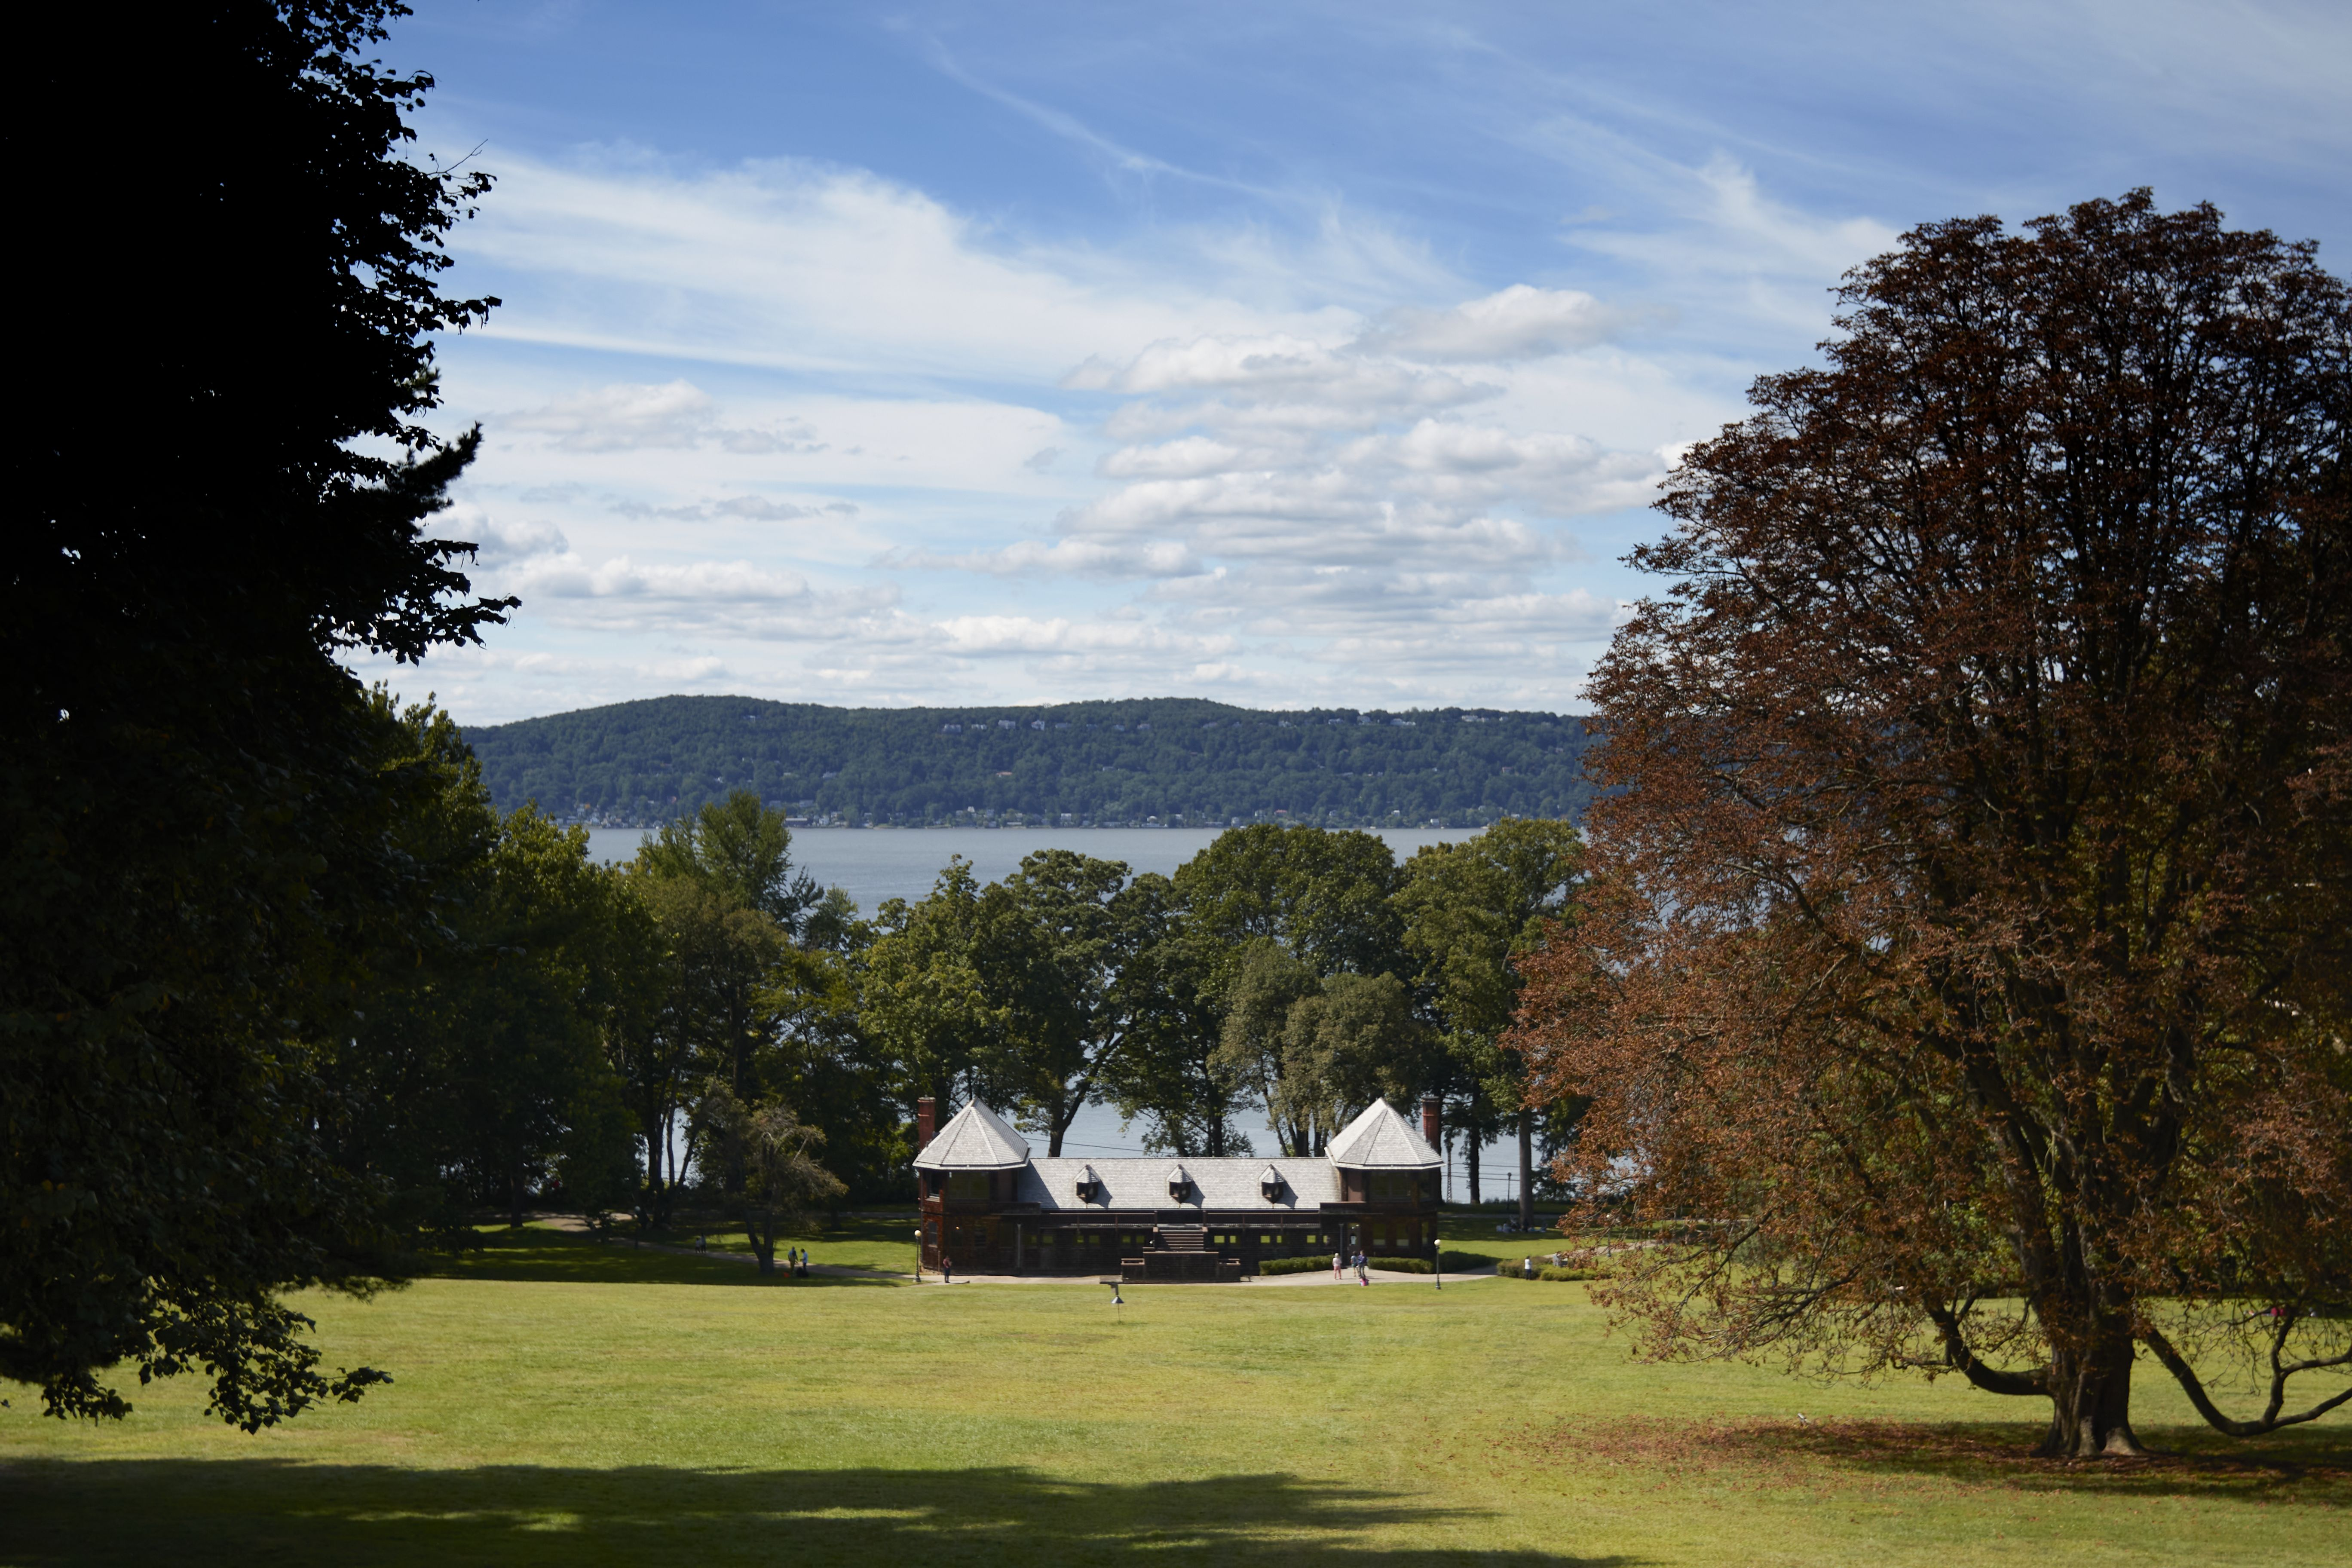 View of bowling alley down sloping grass hill, with Hudson River in background.